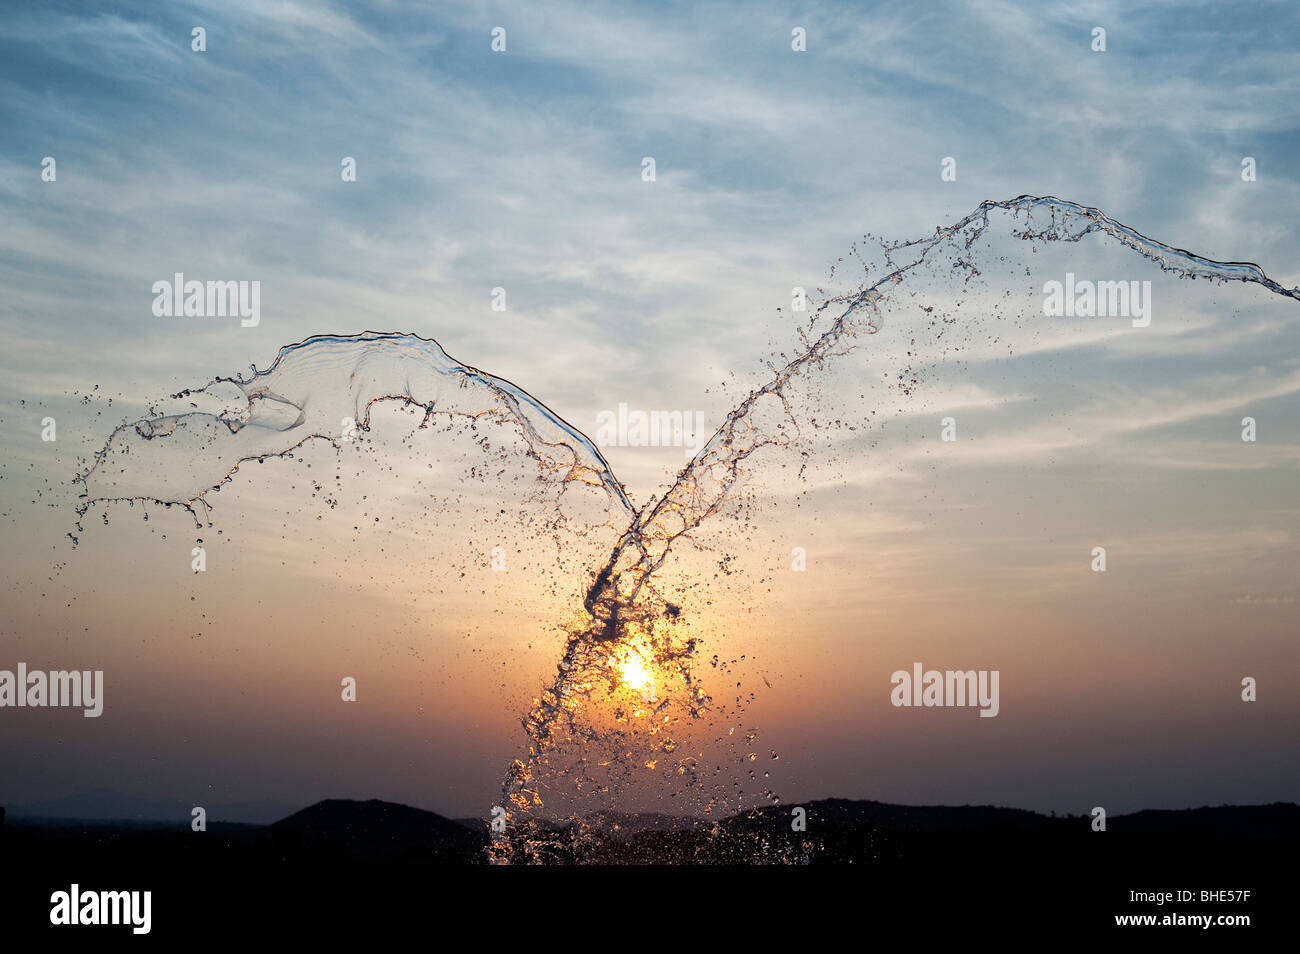 Thrown water against sunset. India - Stock Image